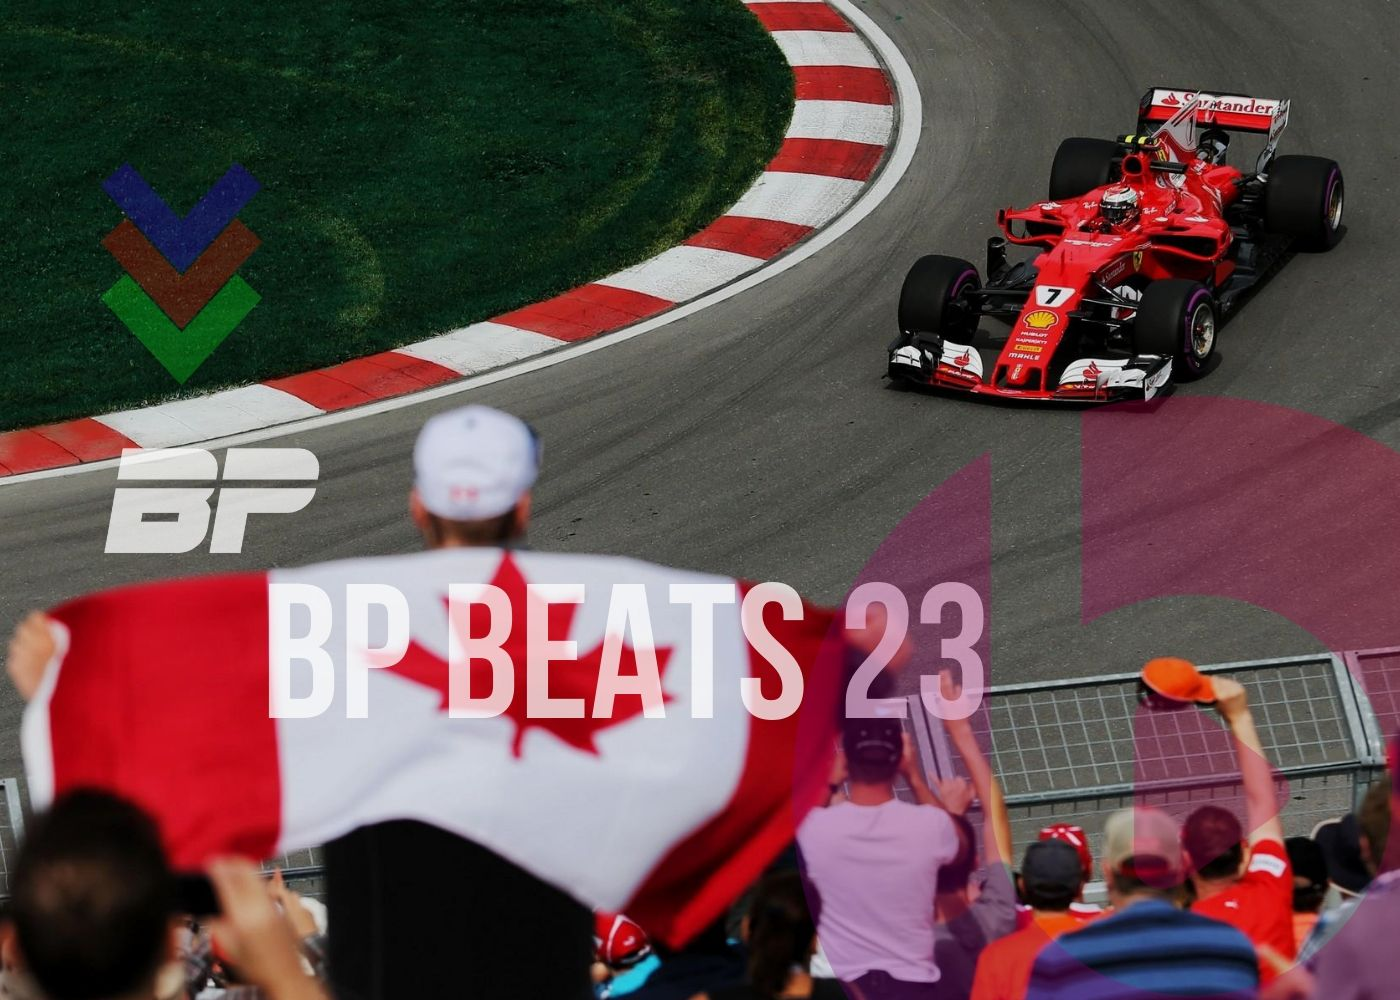 Photo of BP Beats 23 | Canadian Club Mix